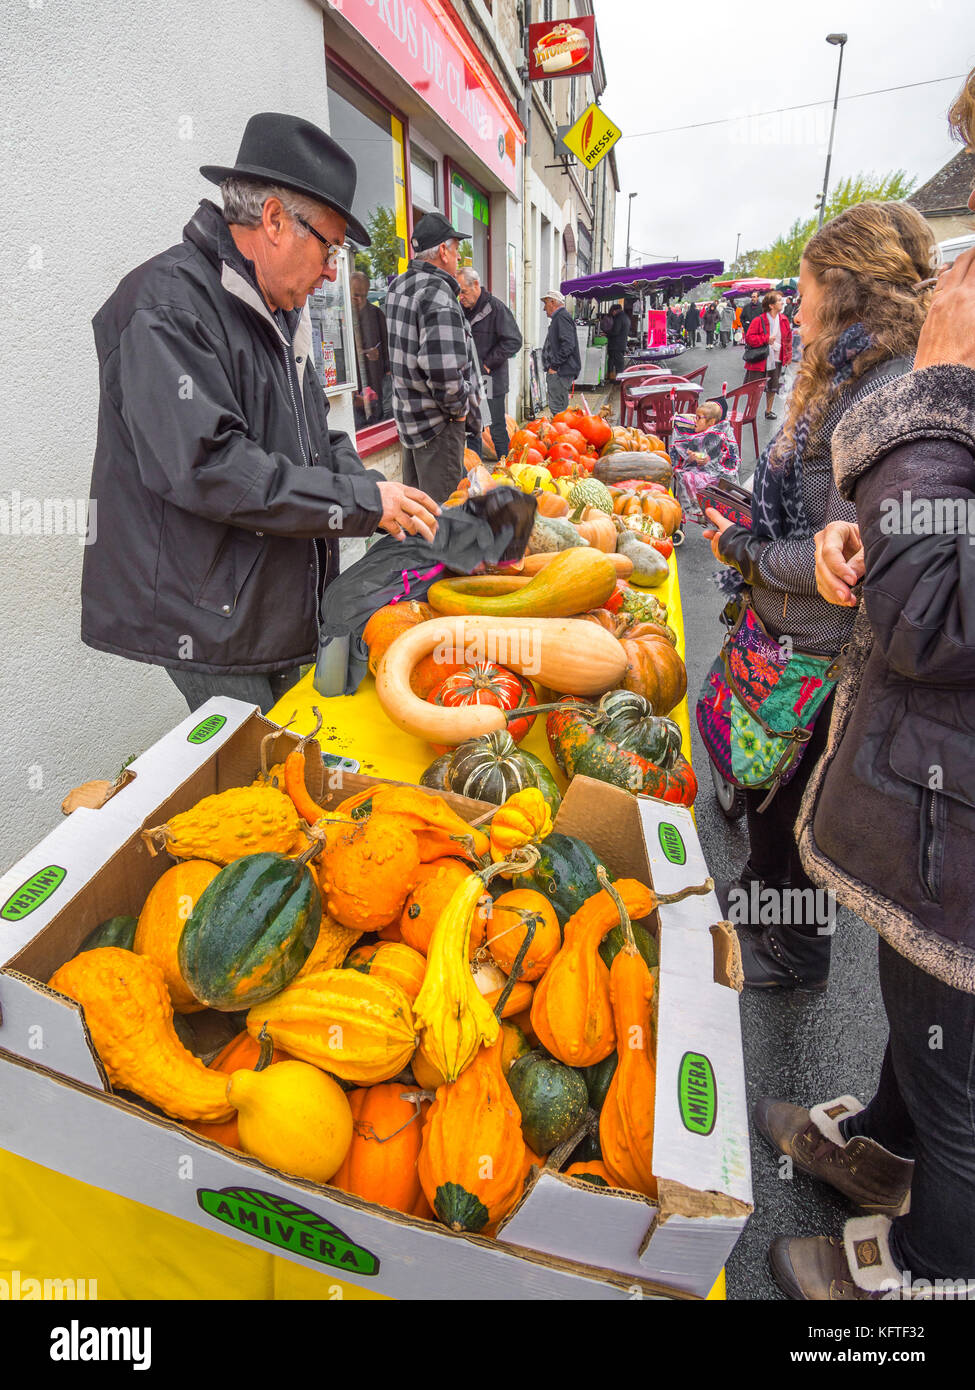 Market stall table full of pumpkins, potirons and gourds - France. - Stock Image